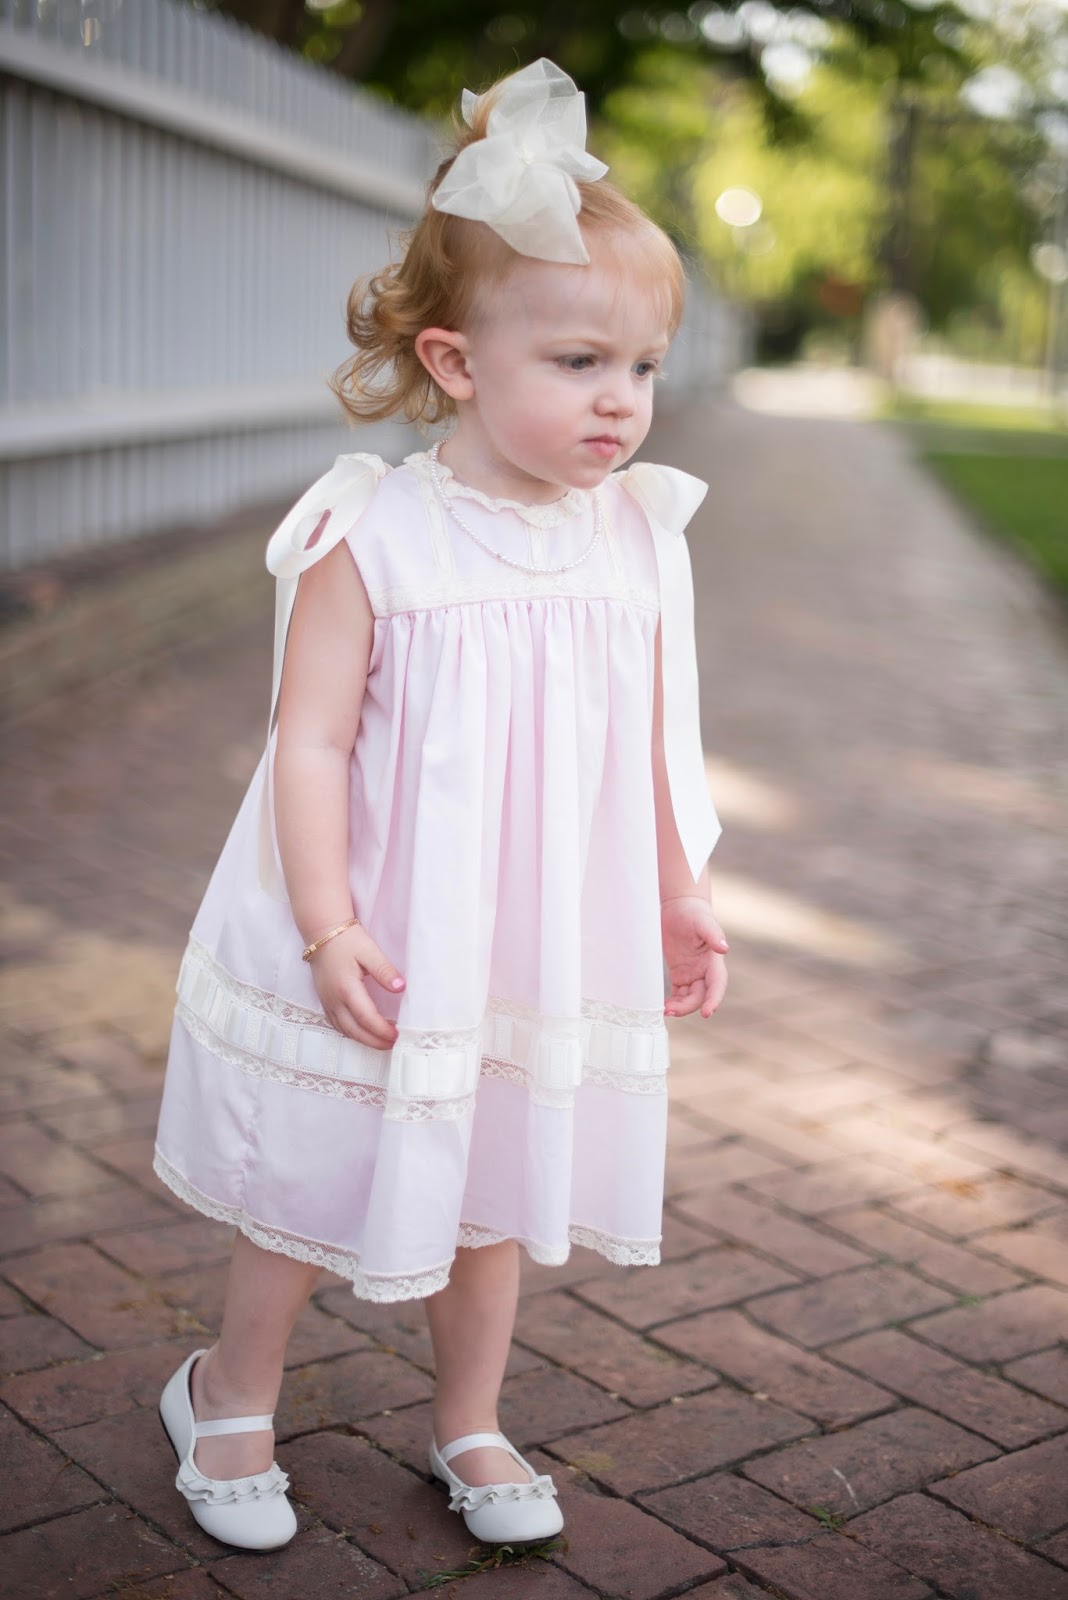 Peppermint Pony Lace Bow Dress - Click through to see more on Something Delightful Blog.